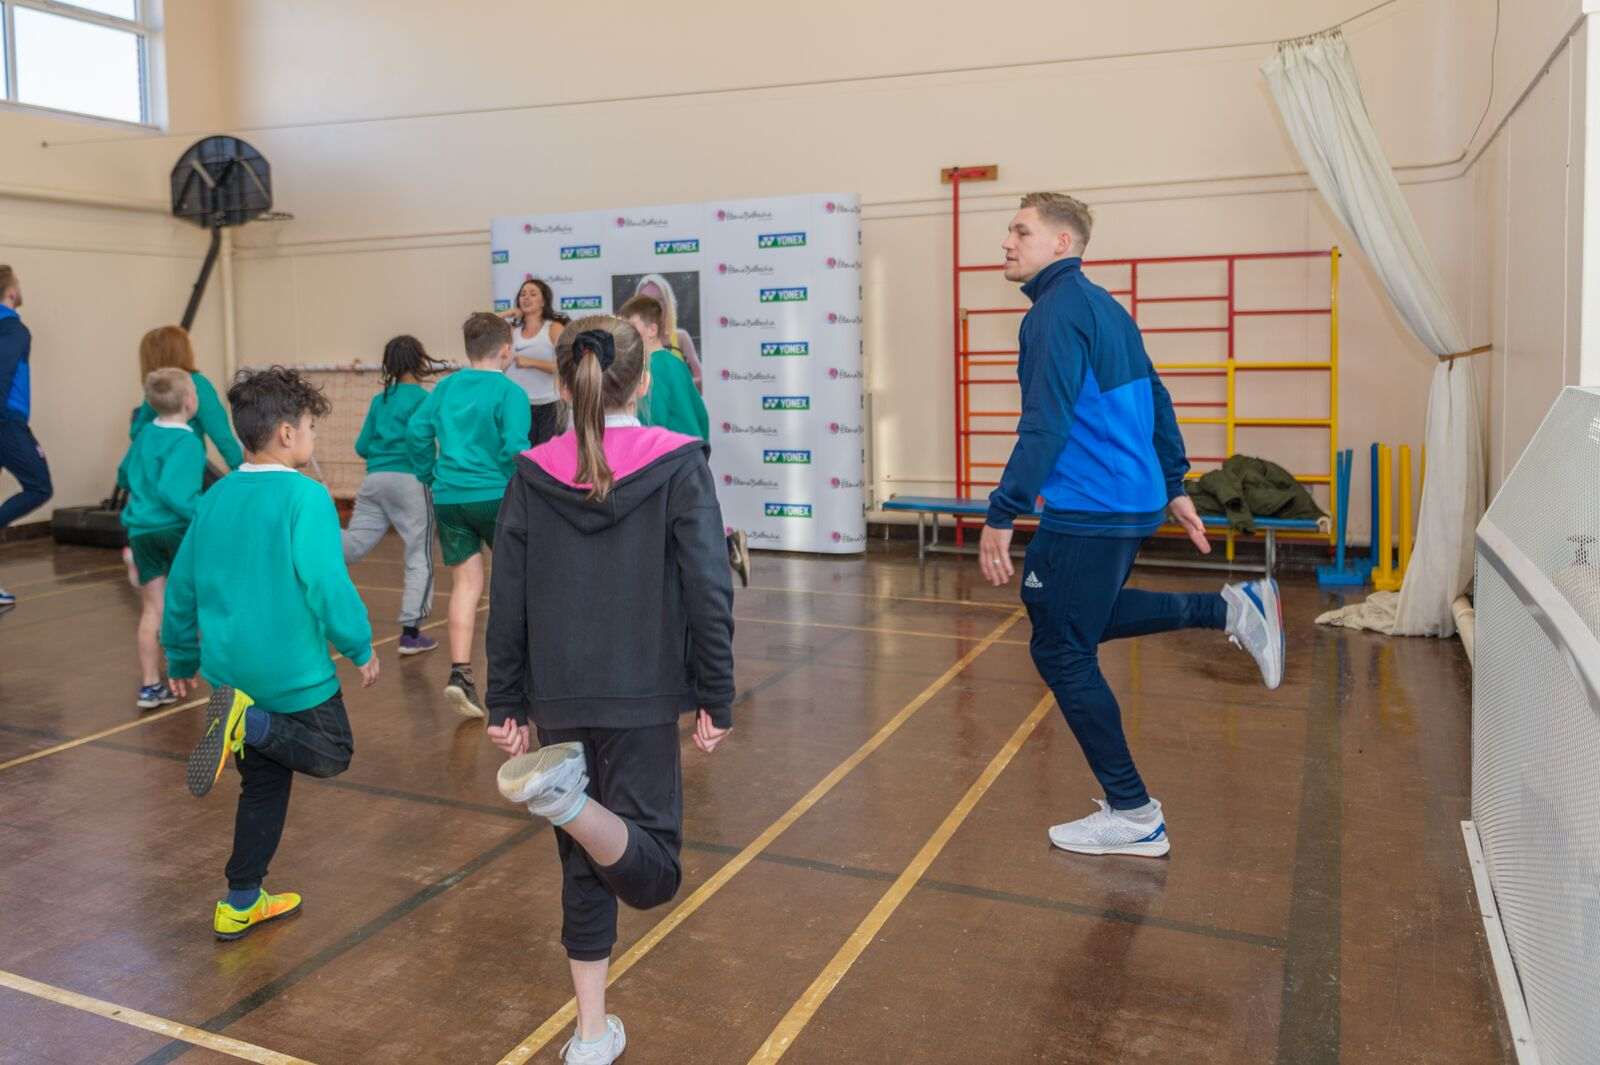 Martyn Waghorn and Leoni taking part in the sports roadshow at Sidegate Primary School, Ipswich.